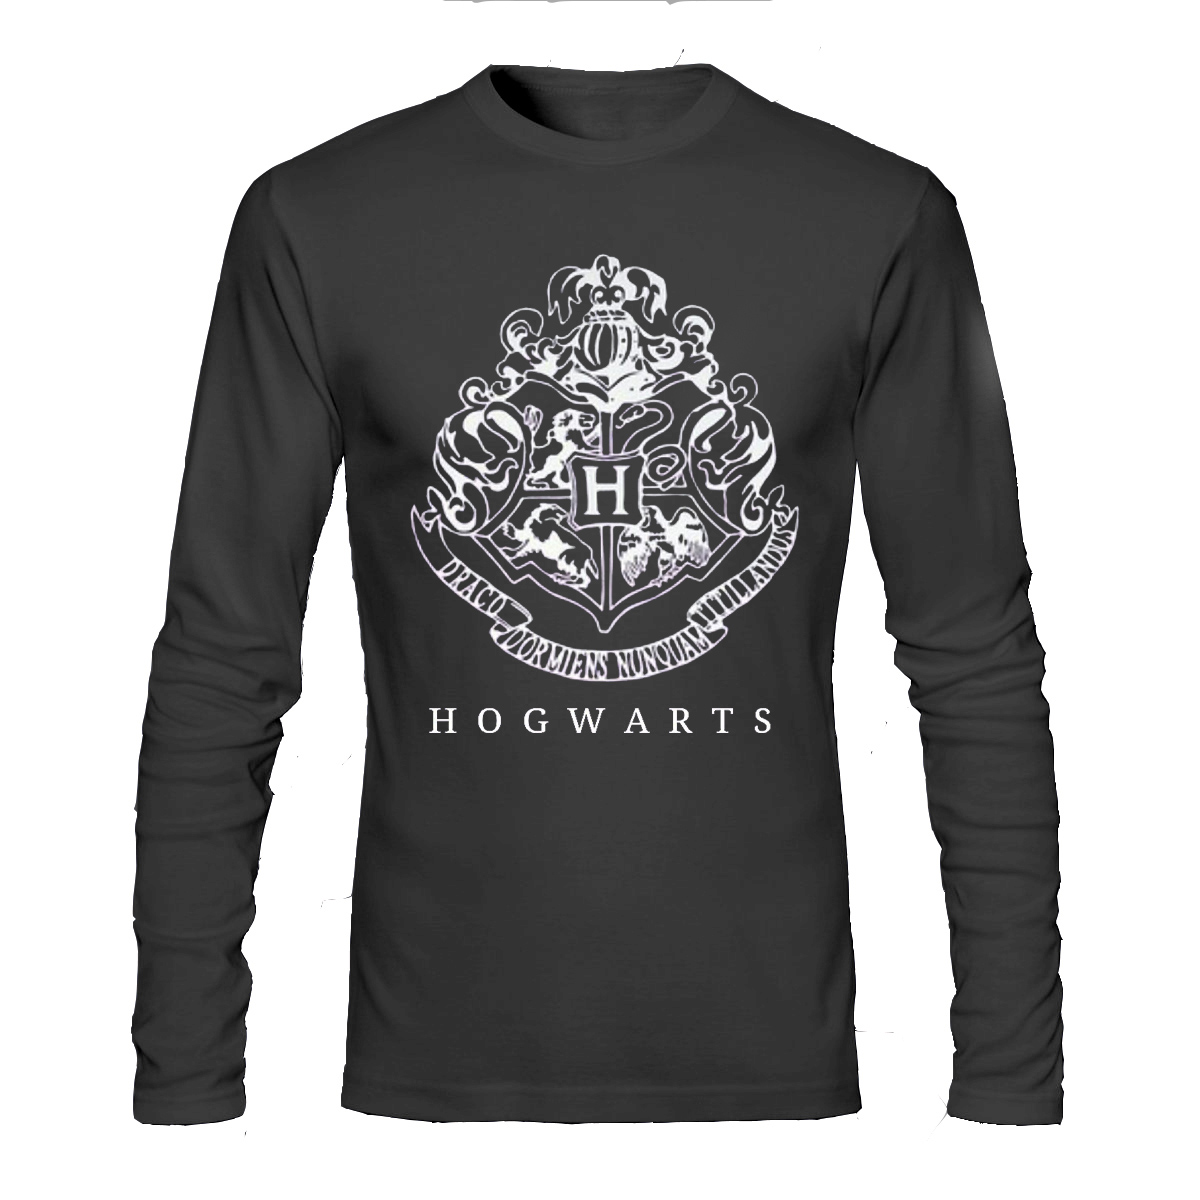 Hogwarts black full sleeve t shirt swag shirts for Full black t shirt